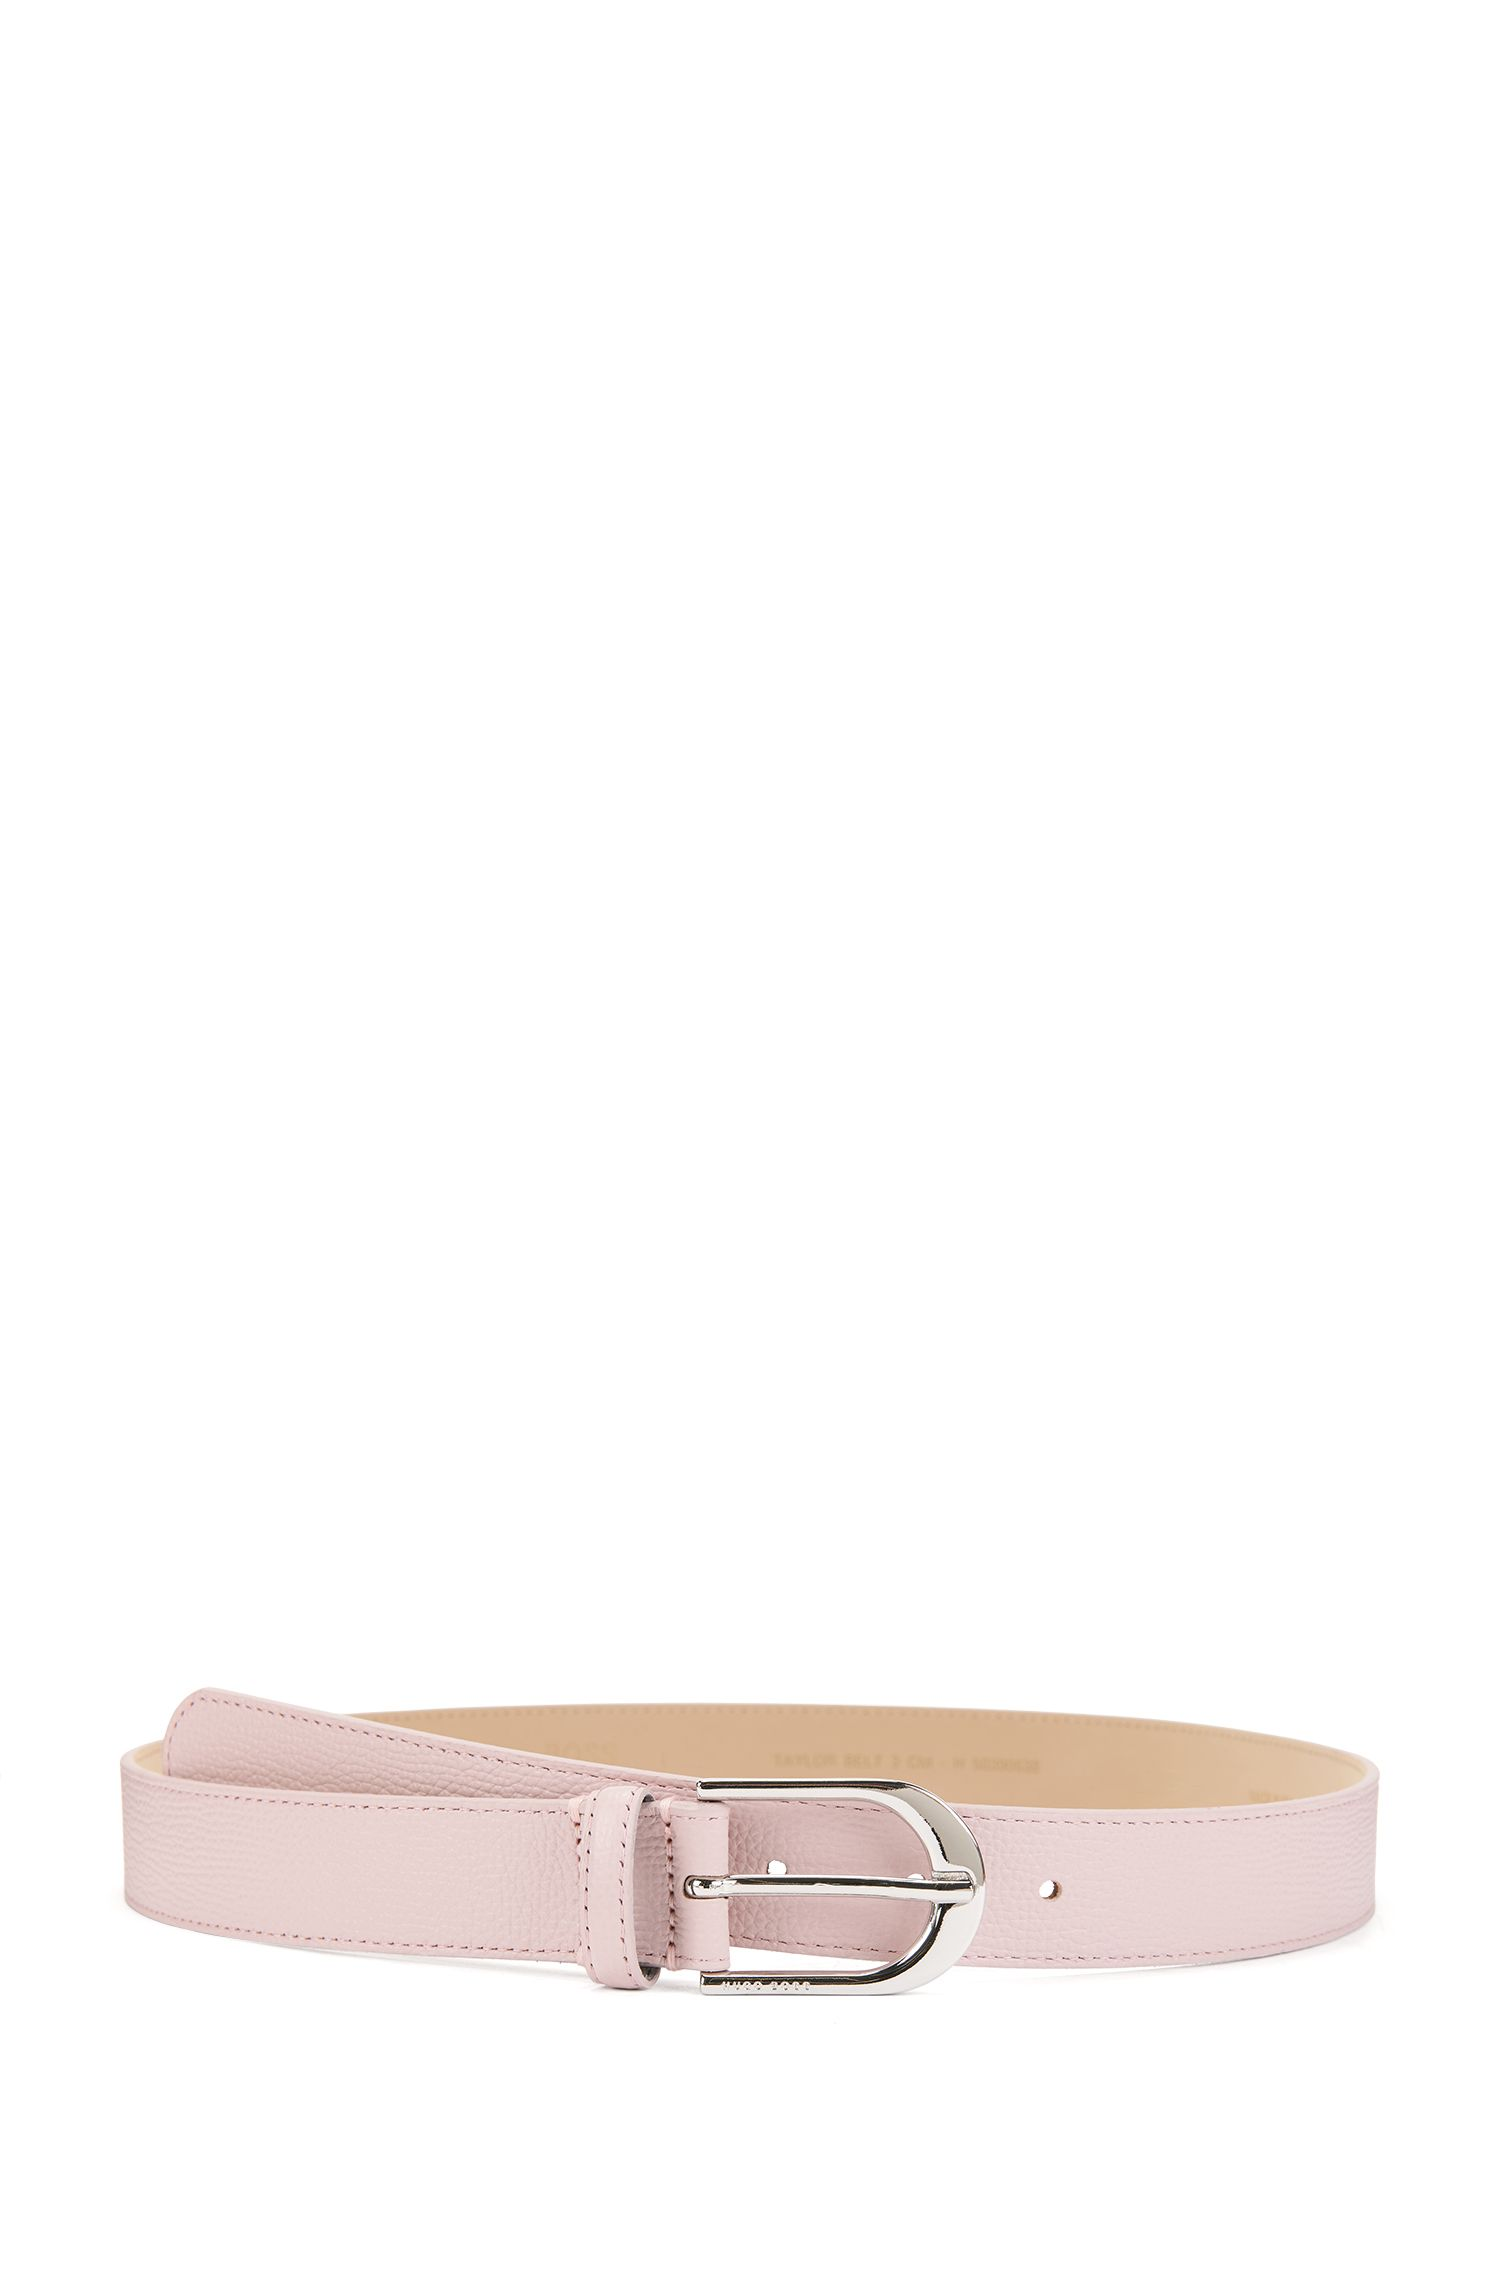 Italian-leather belt with polished silver-effect buckle